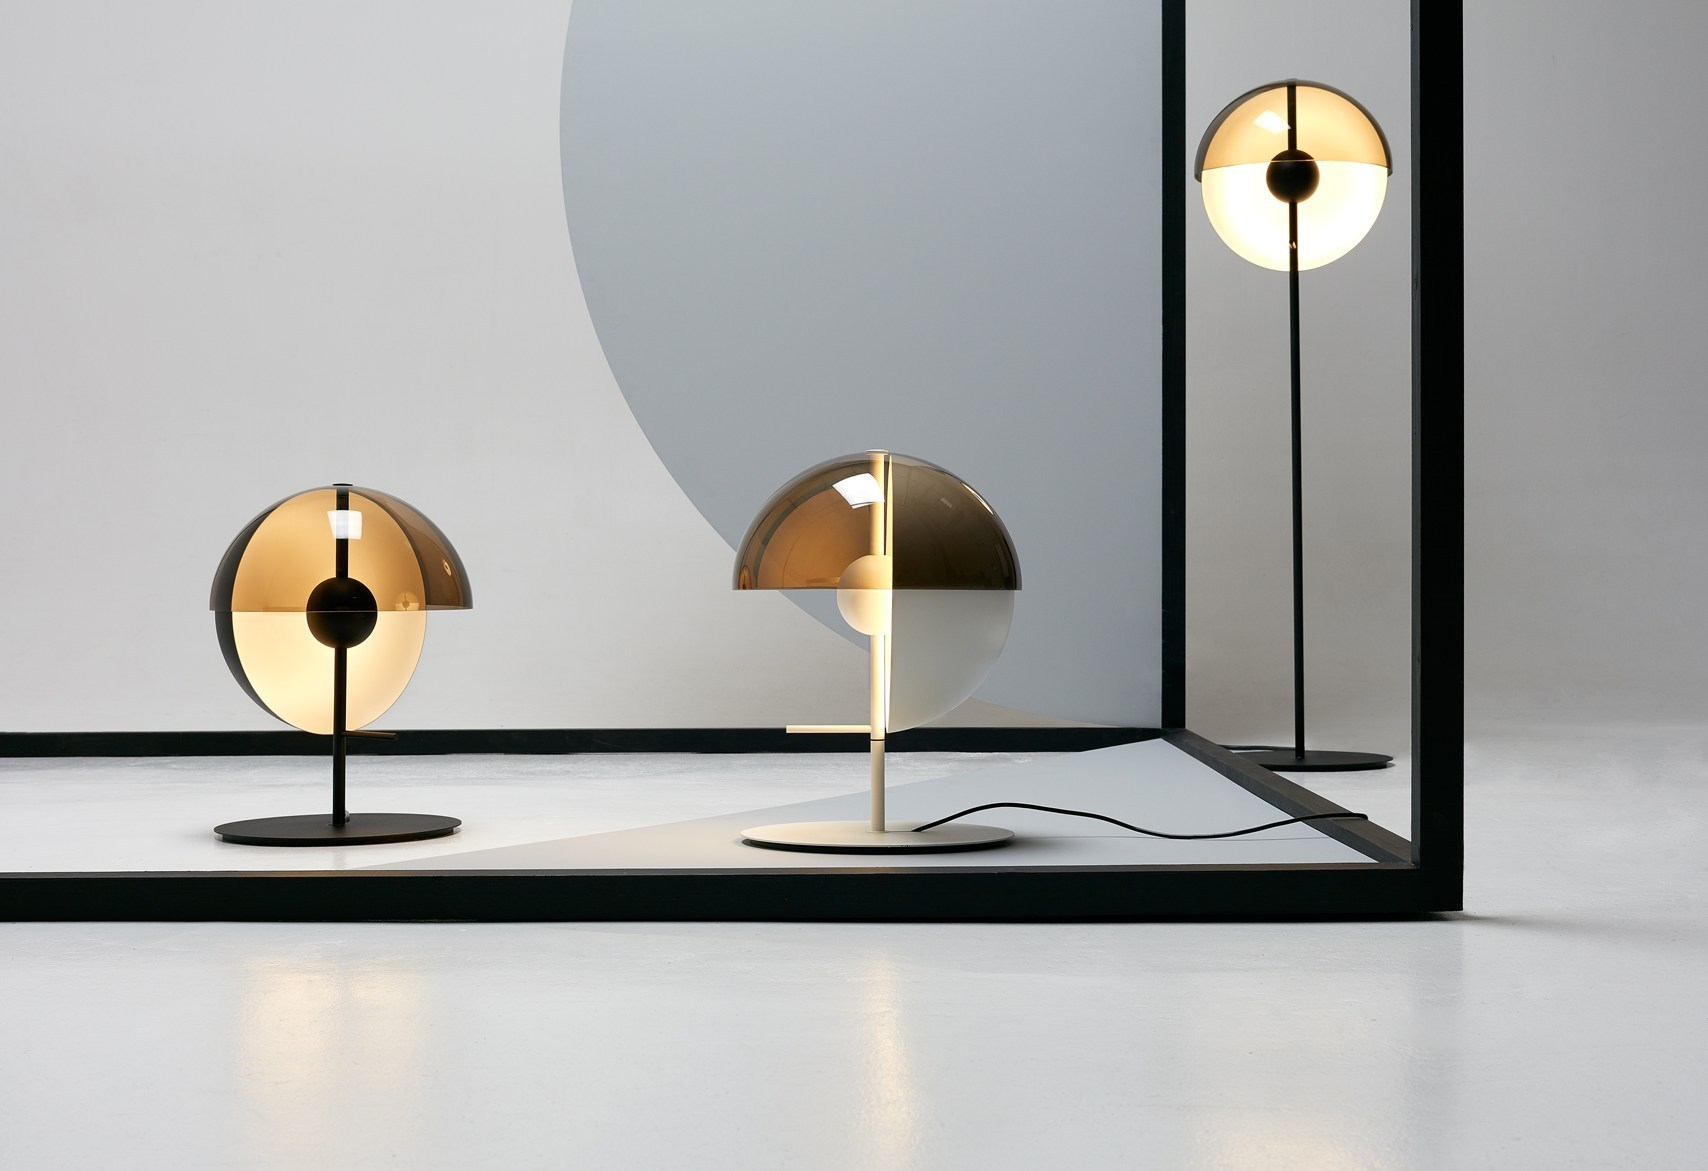 theia lamp by mathias hahn for marset design is this. Black Bedroom Furniture Sets. Home Design Ideas